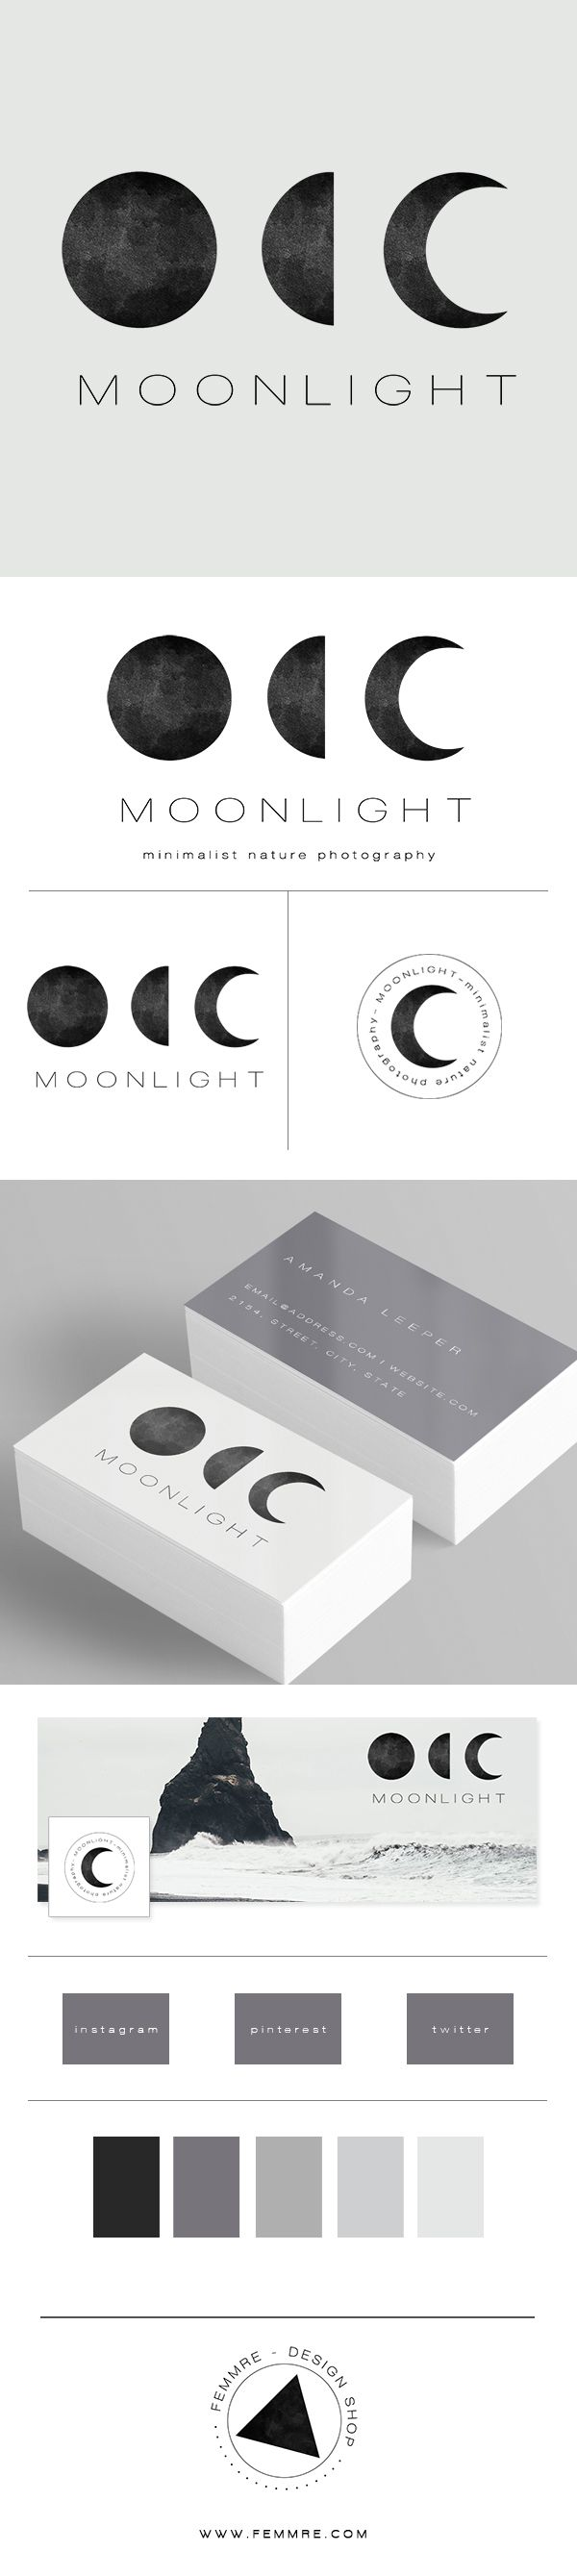 Moonlight Photographer Premade Brand Launch (sold only once) | FEMMRE - Chic Premade Branding | logo design, brand design, branding, premade brand, premade logo